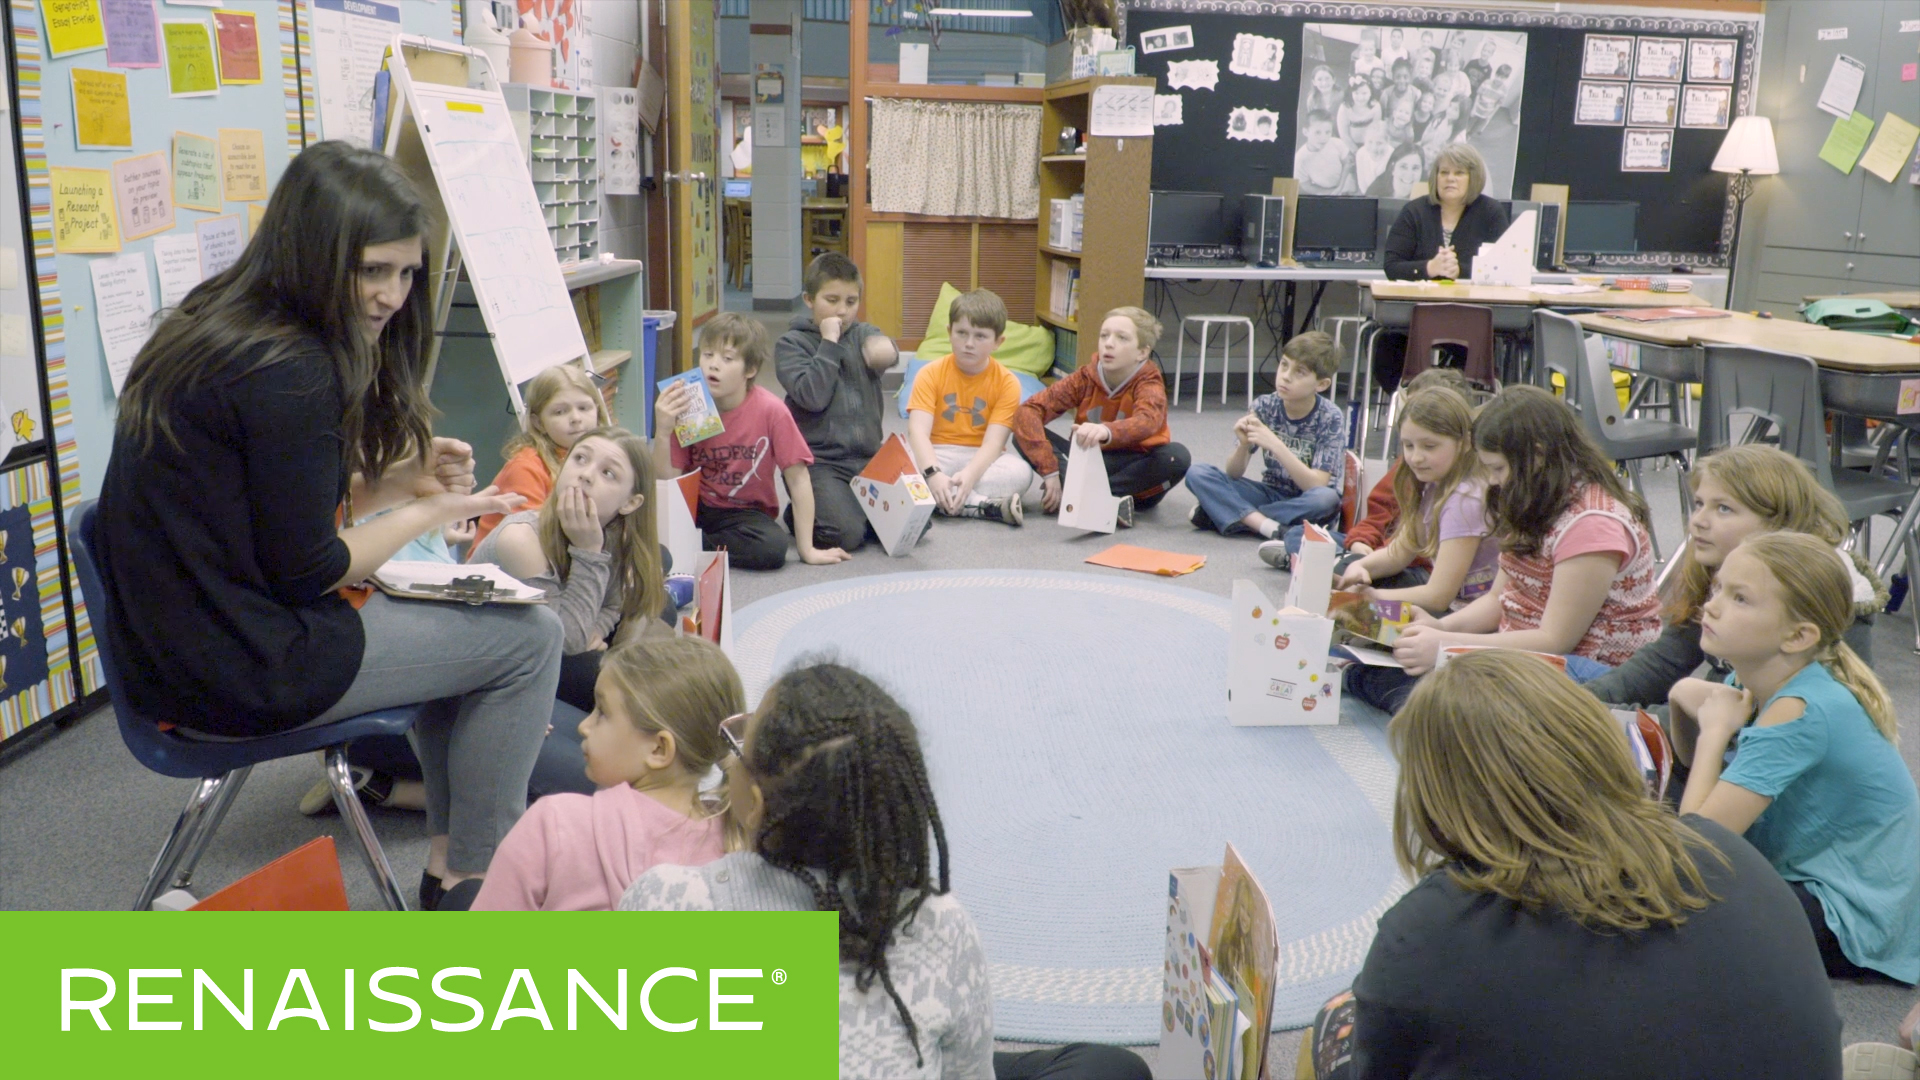 Product in Action - Renaissance Accelerated Reader®